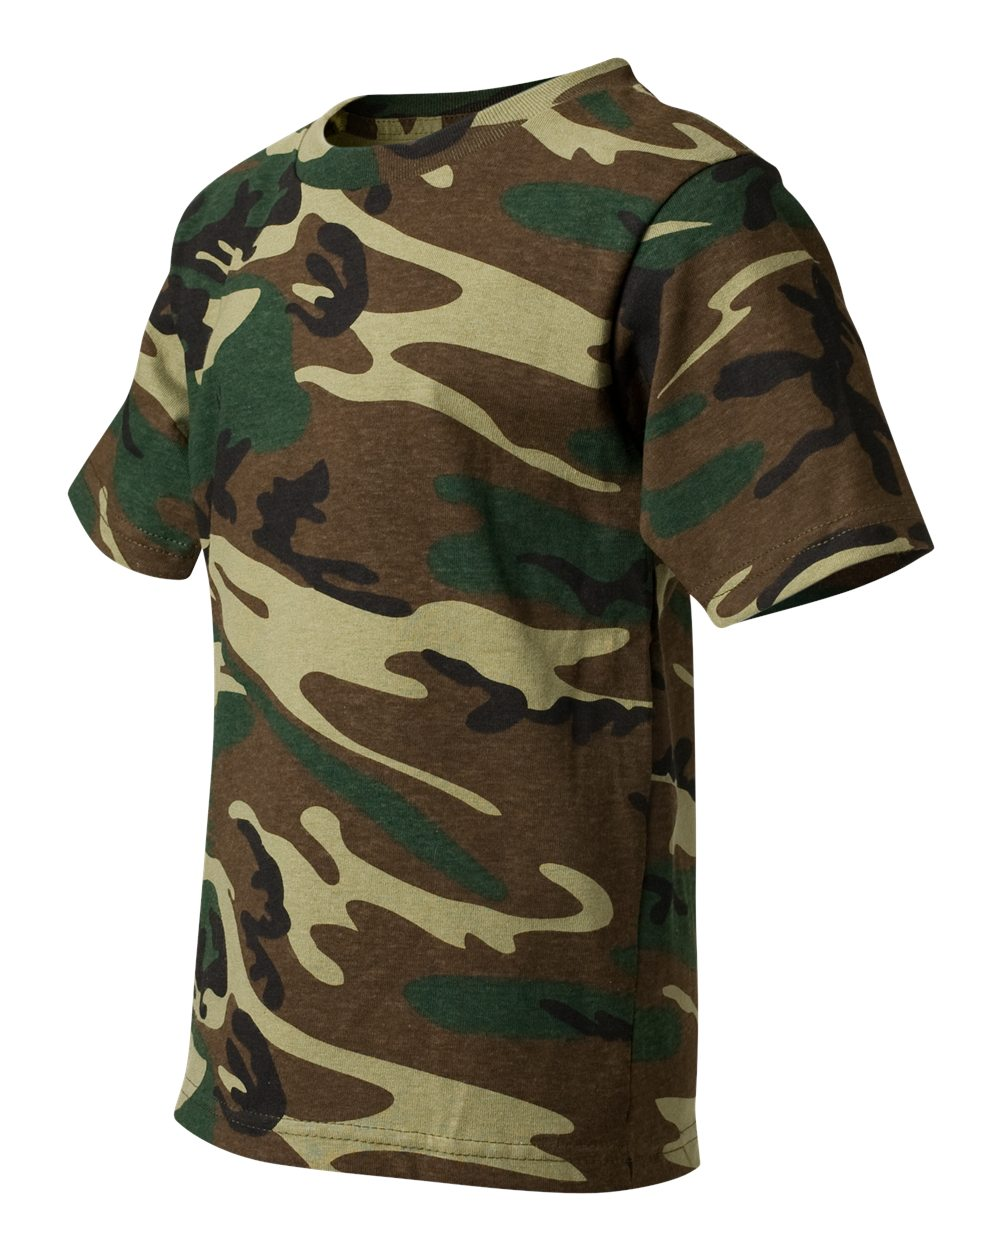 Code five 2206 youth camouflage t shirt friendly for Camouflage t shirt printing